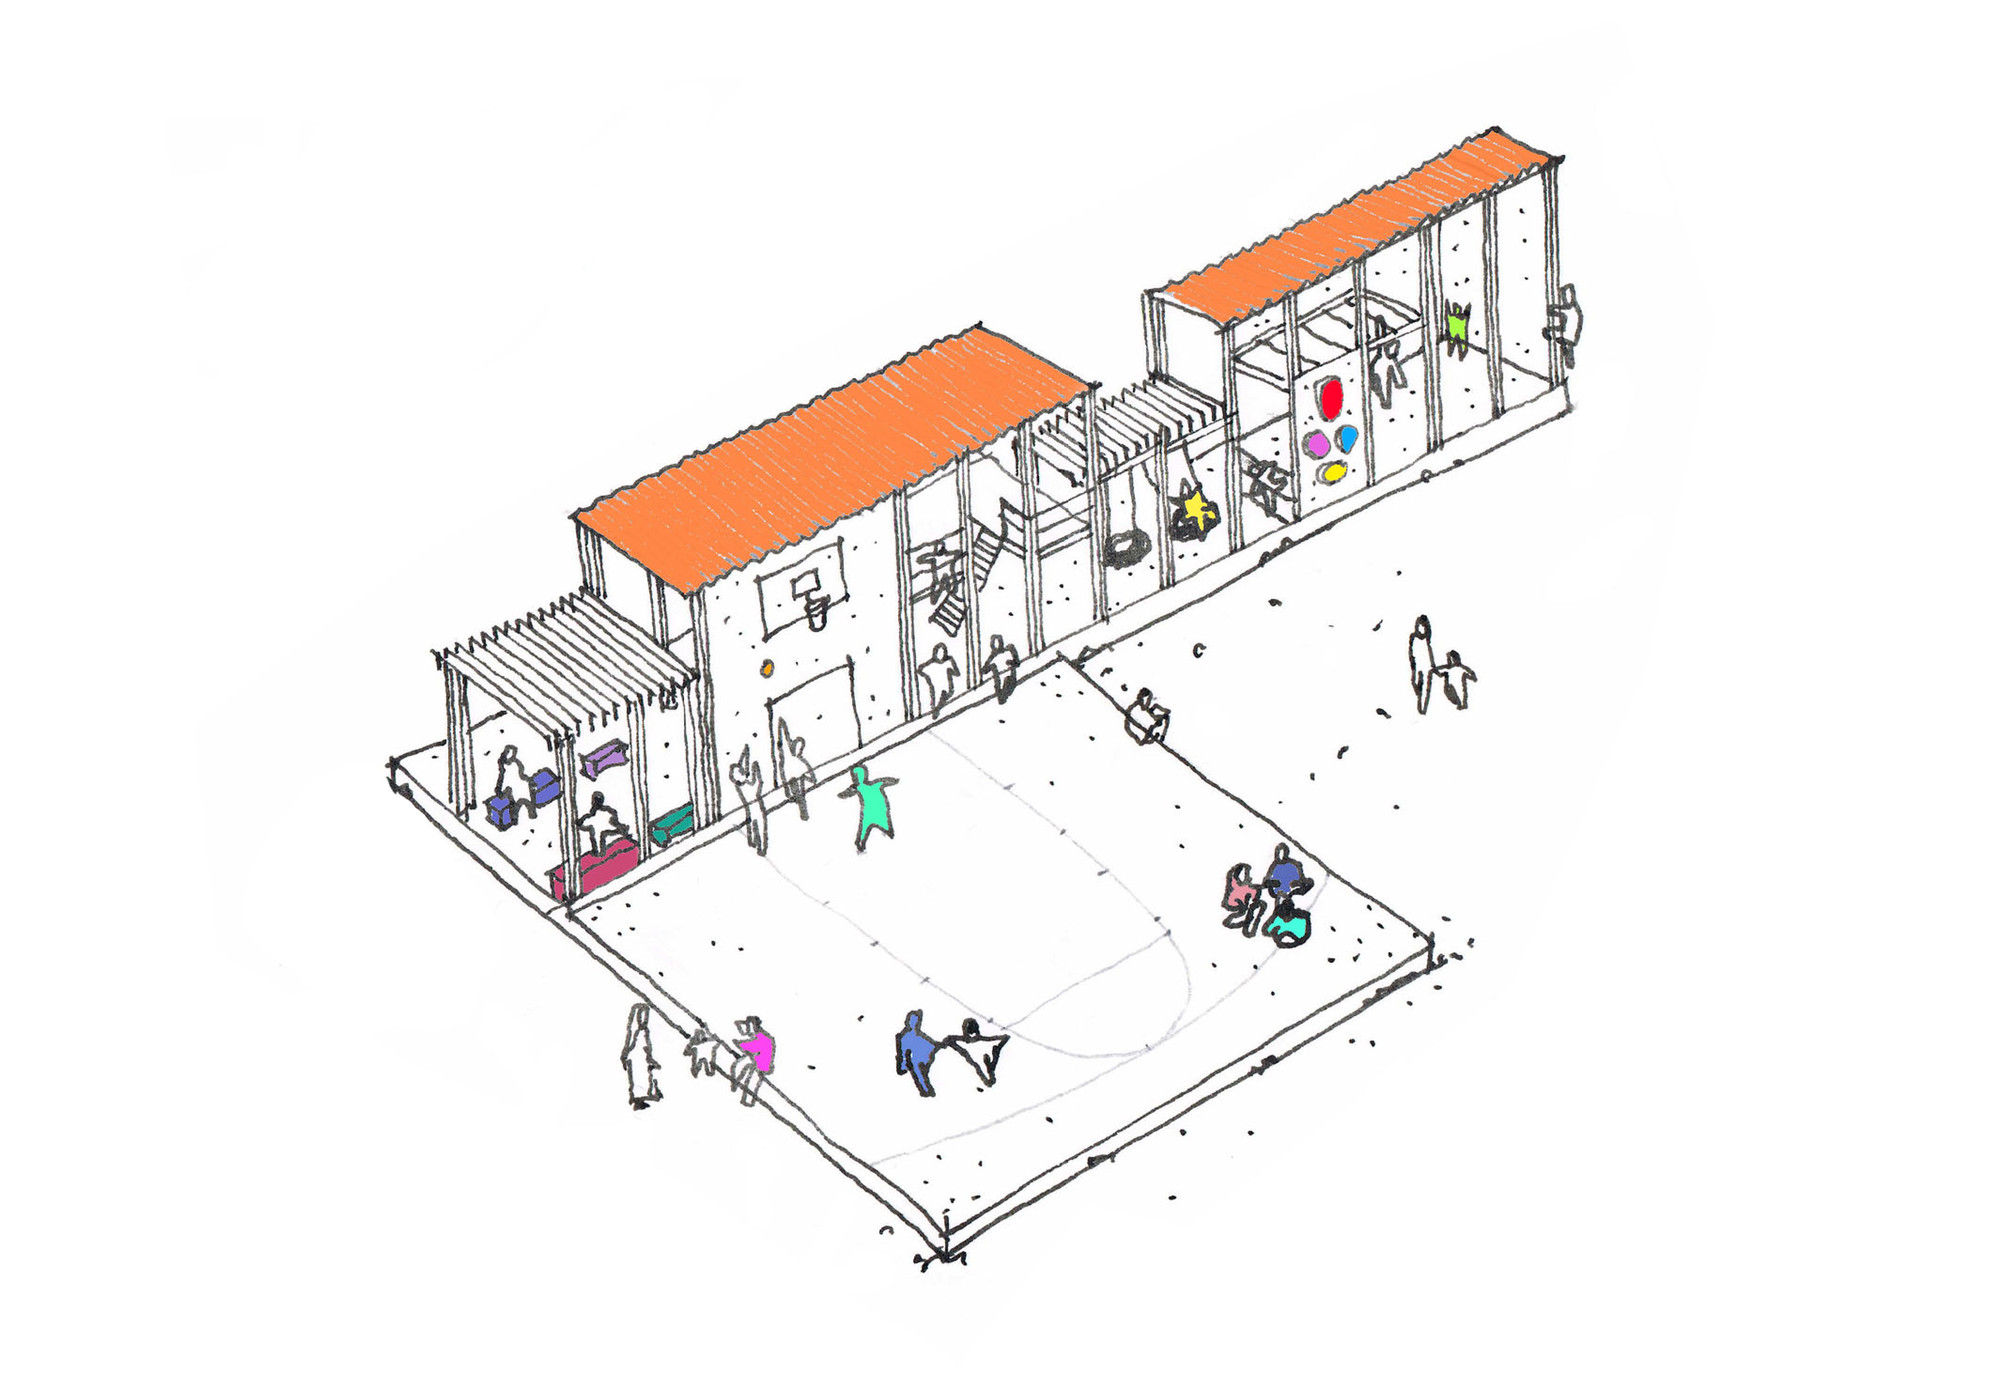 CatalyticAction's Playground Puts Children at the Center of Relief Efforts for Syria, A drawing of the proposed playground. Image © CatalyticAction